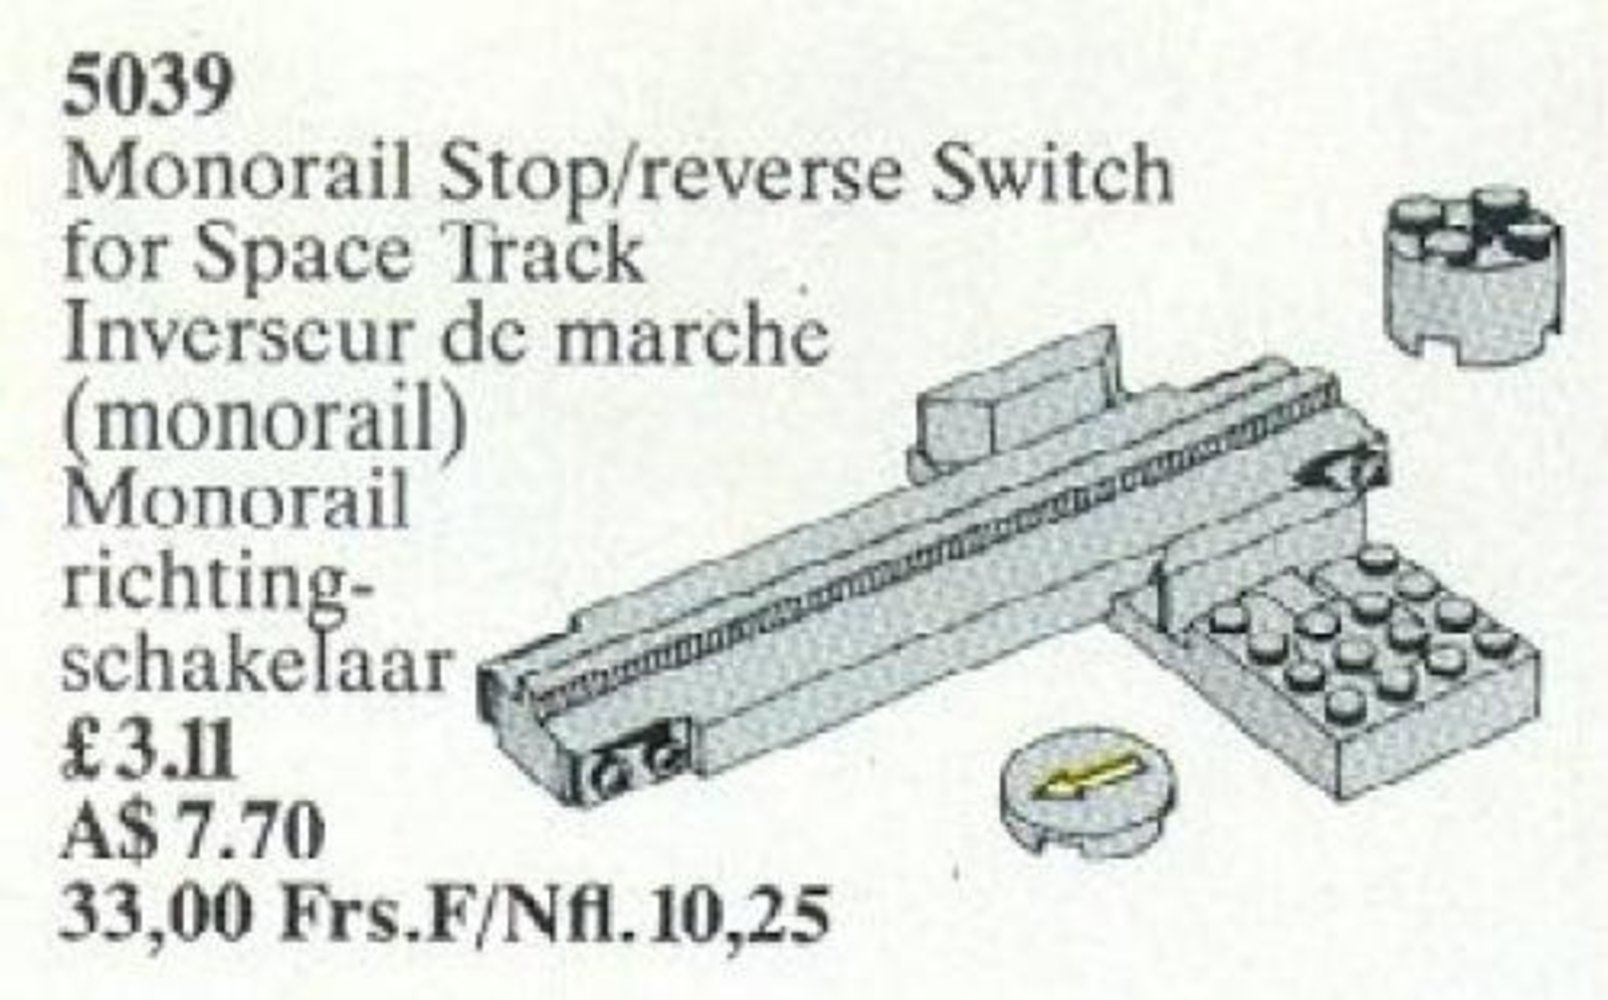 Monorail Stop / Reverse Switch